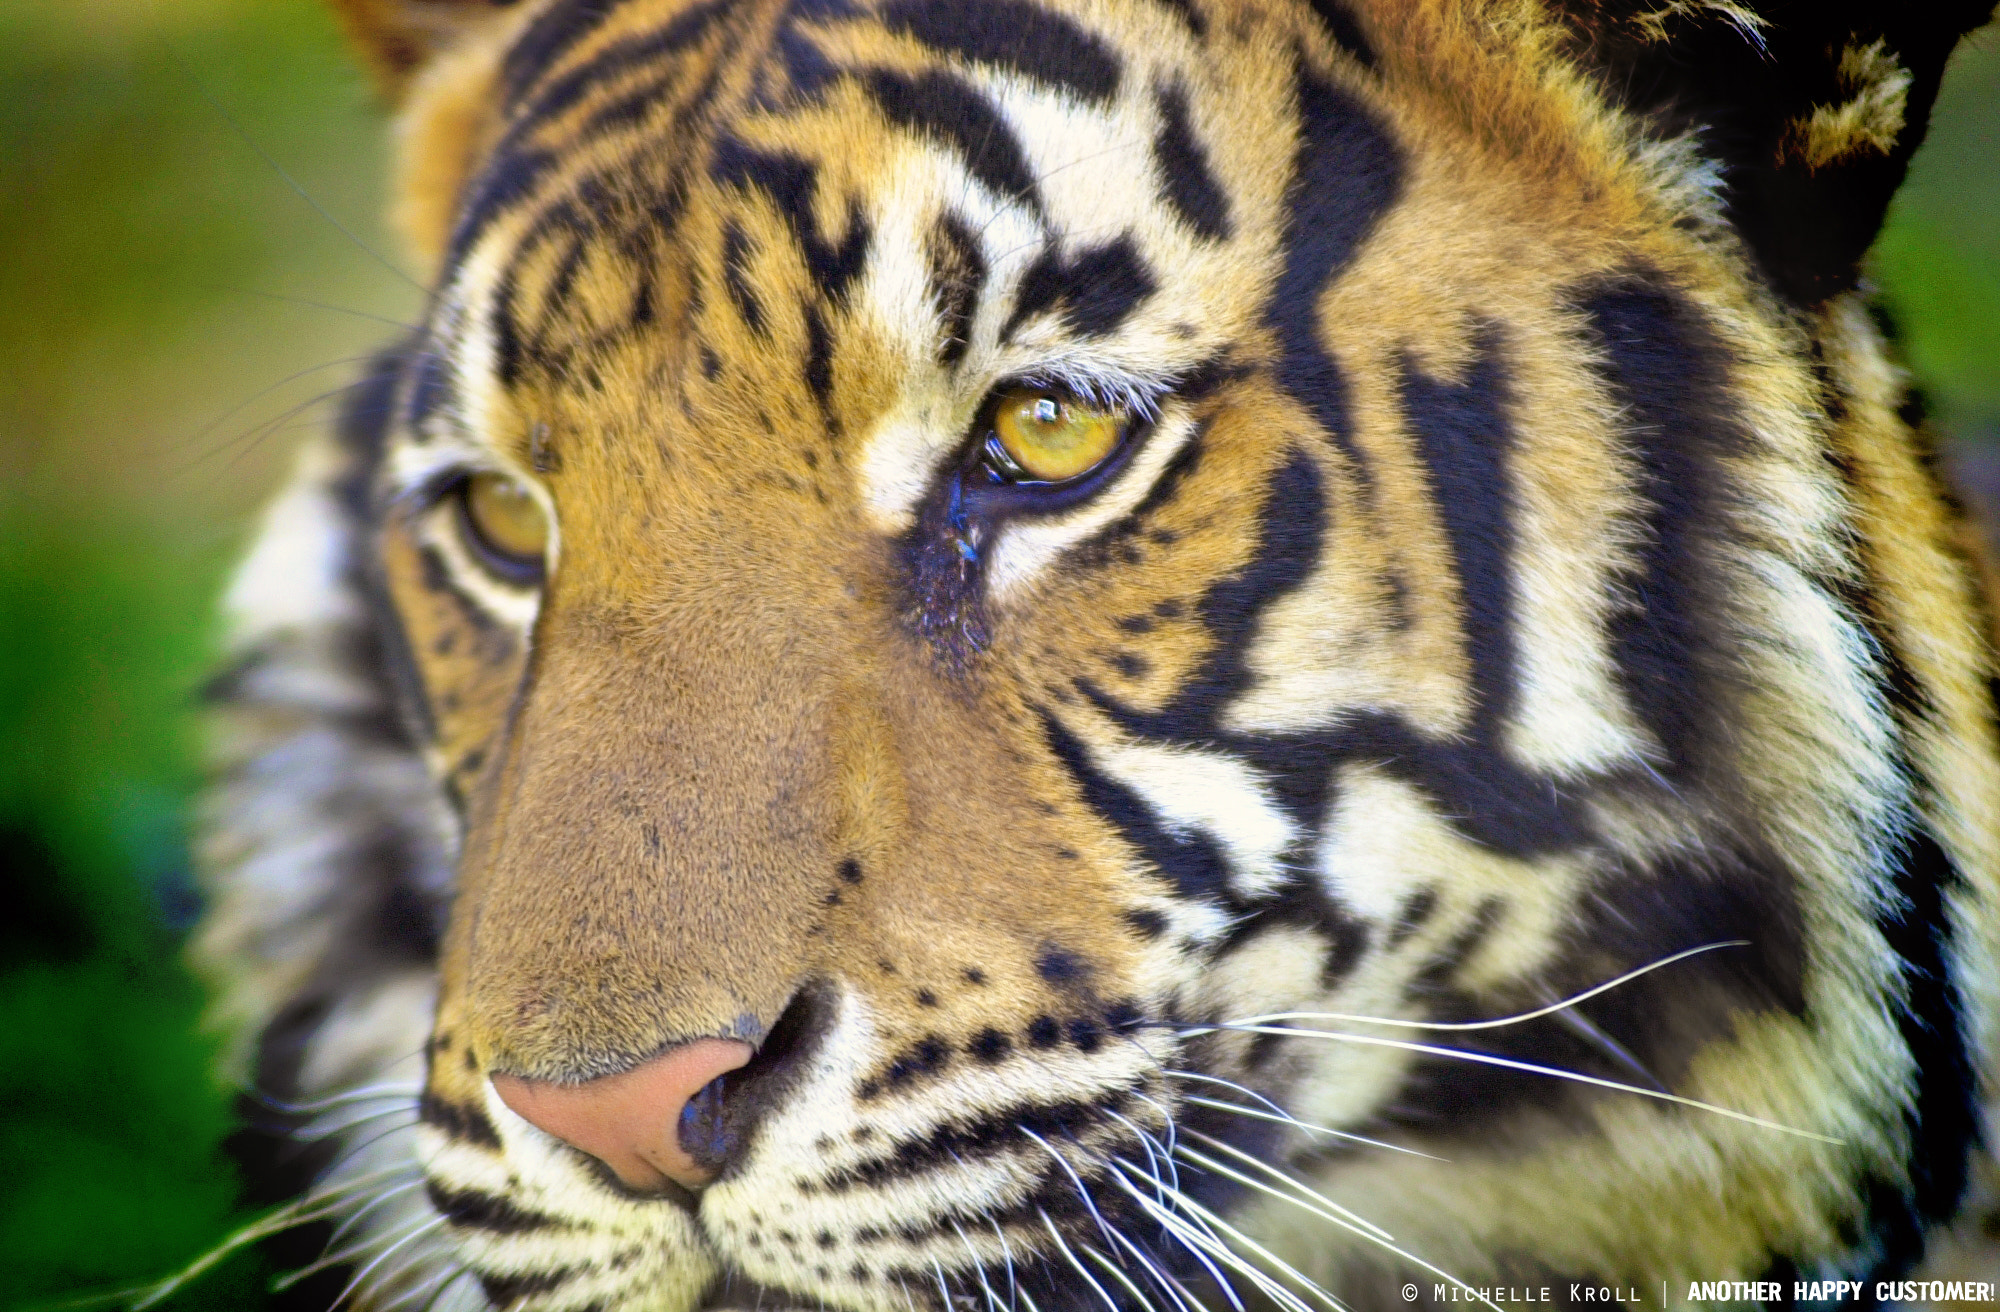 Photograph Tiger Tiger burning bright by Michelle Kroll on 500px